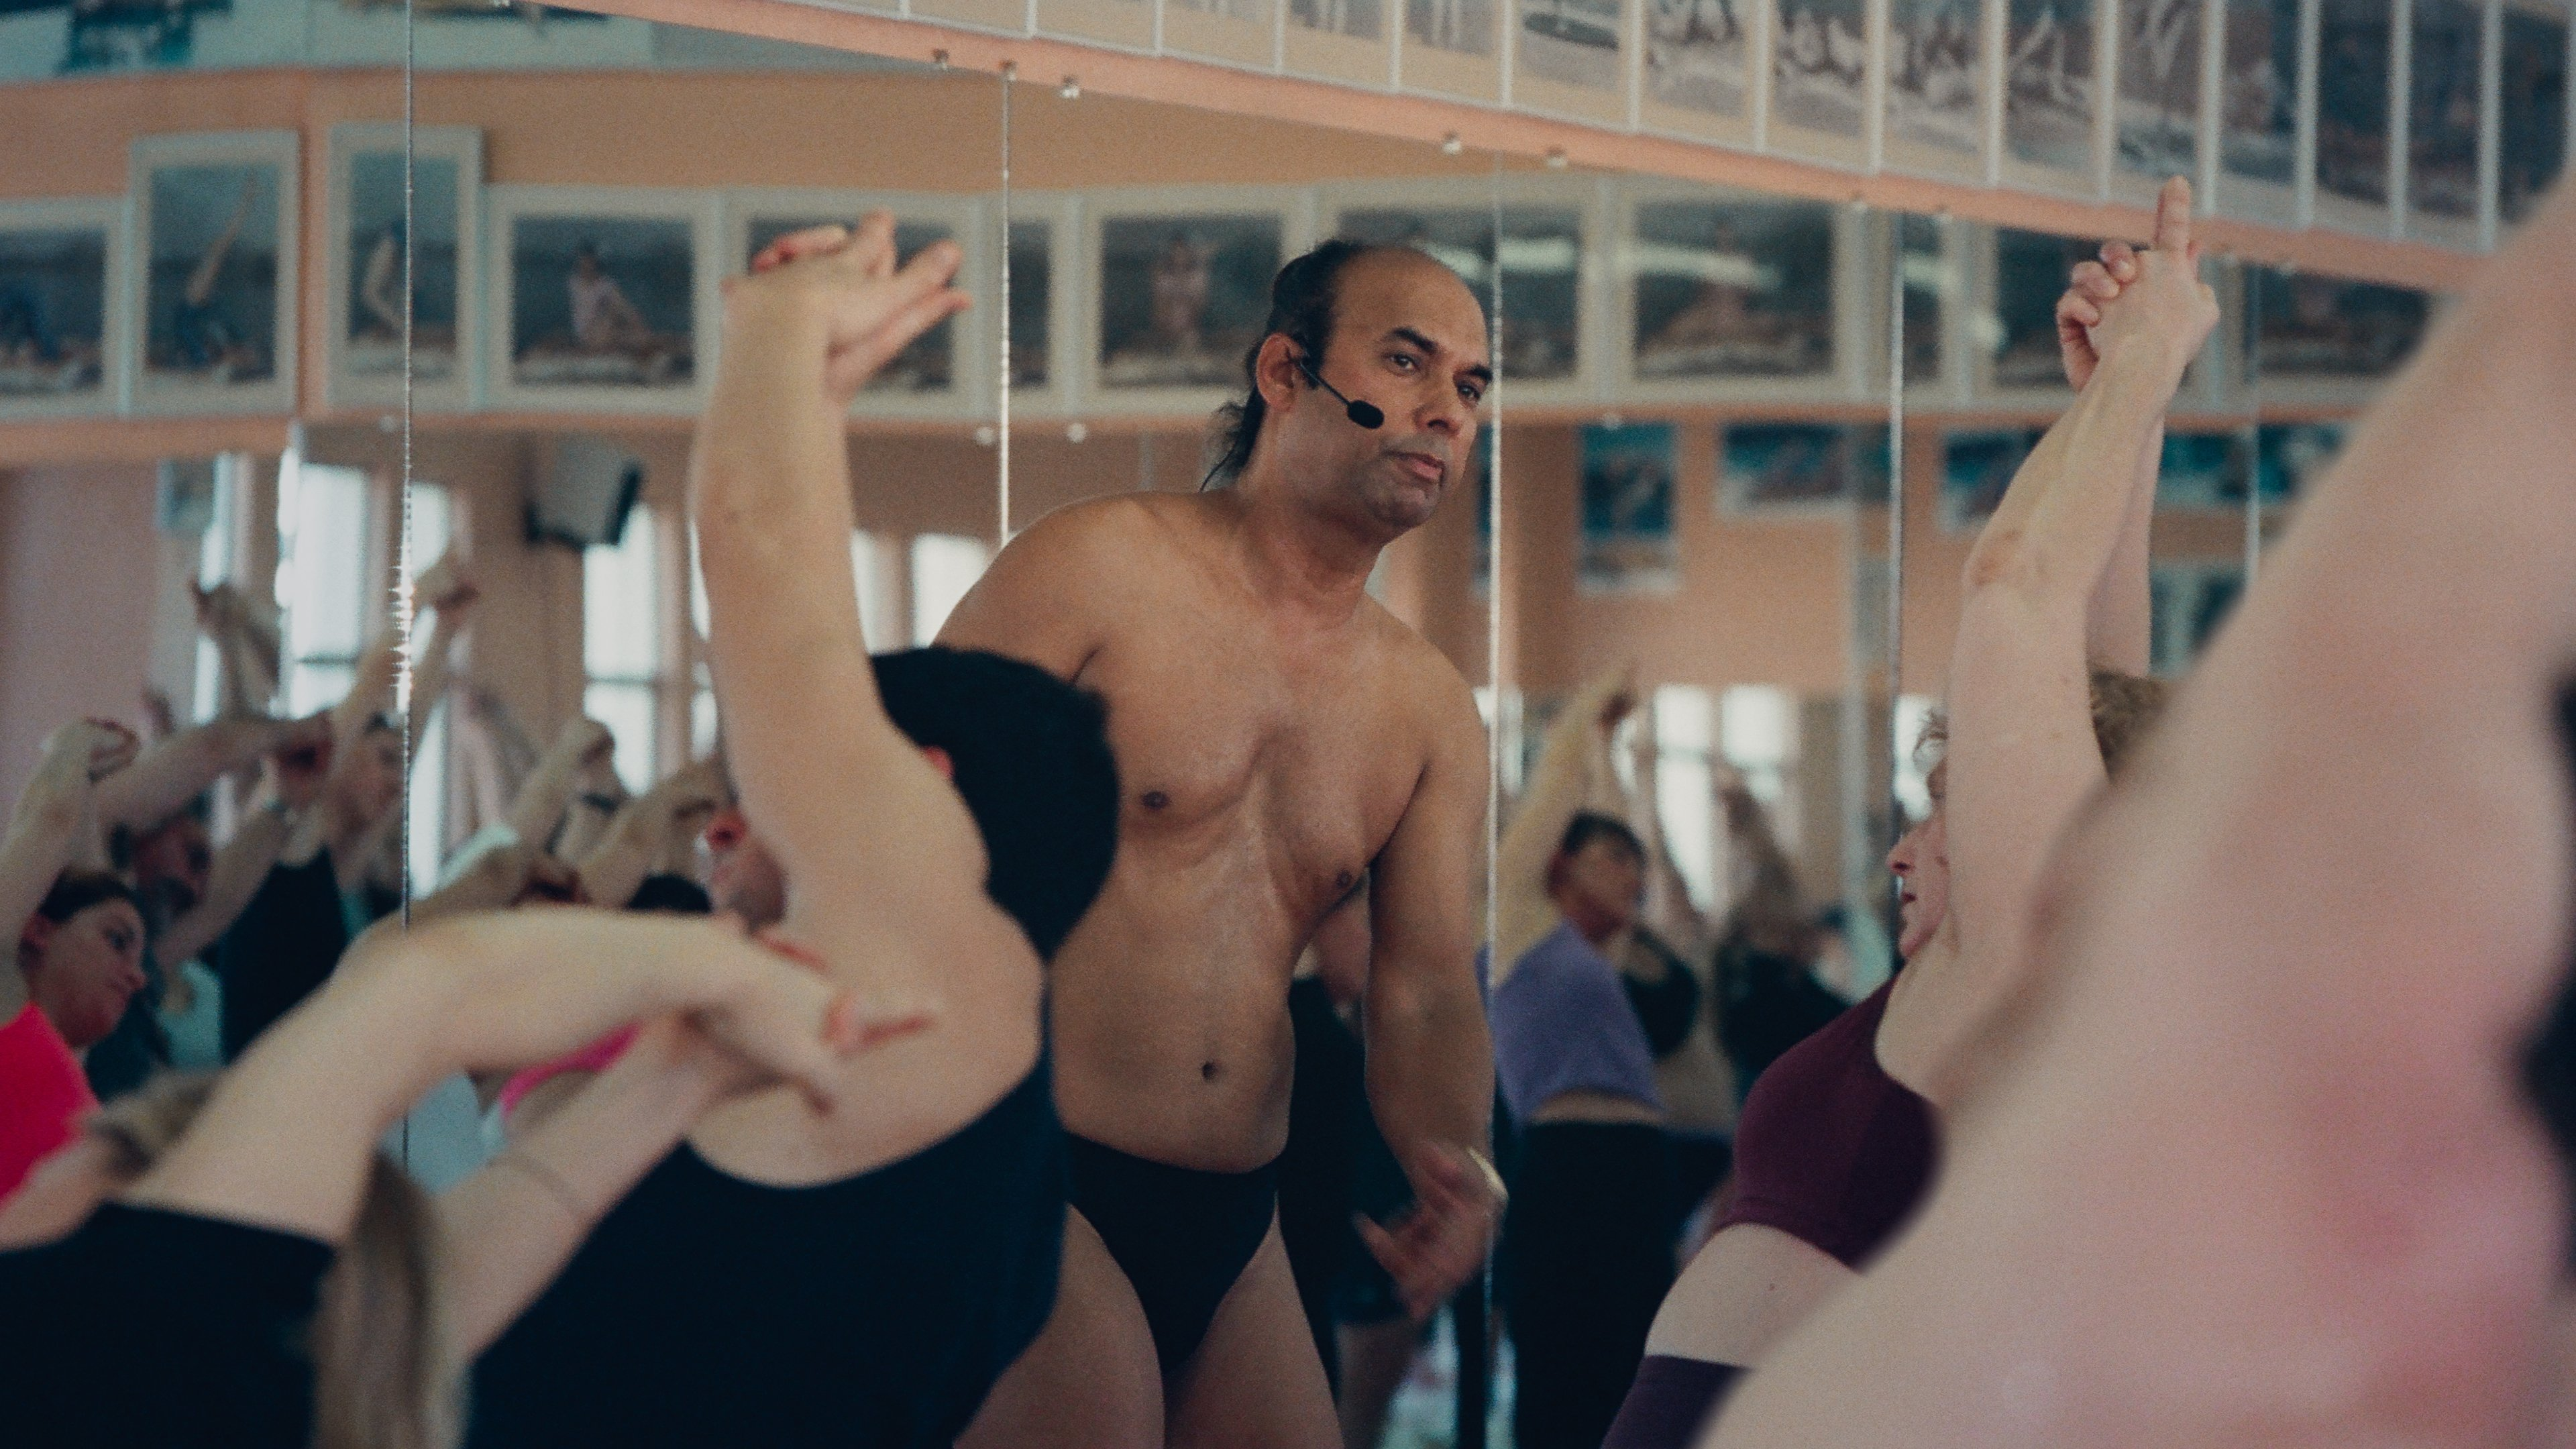 'Bikram: Yogi, Guru, Predator' adds another twist to #MeToo movement